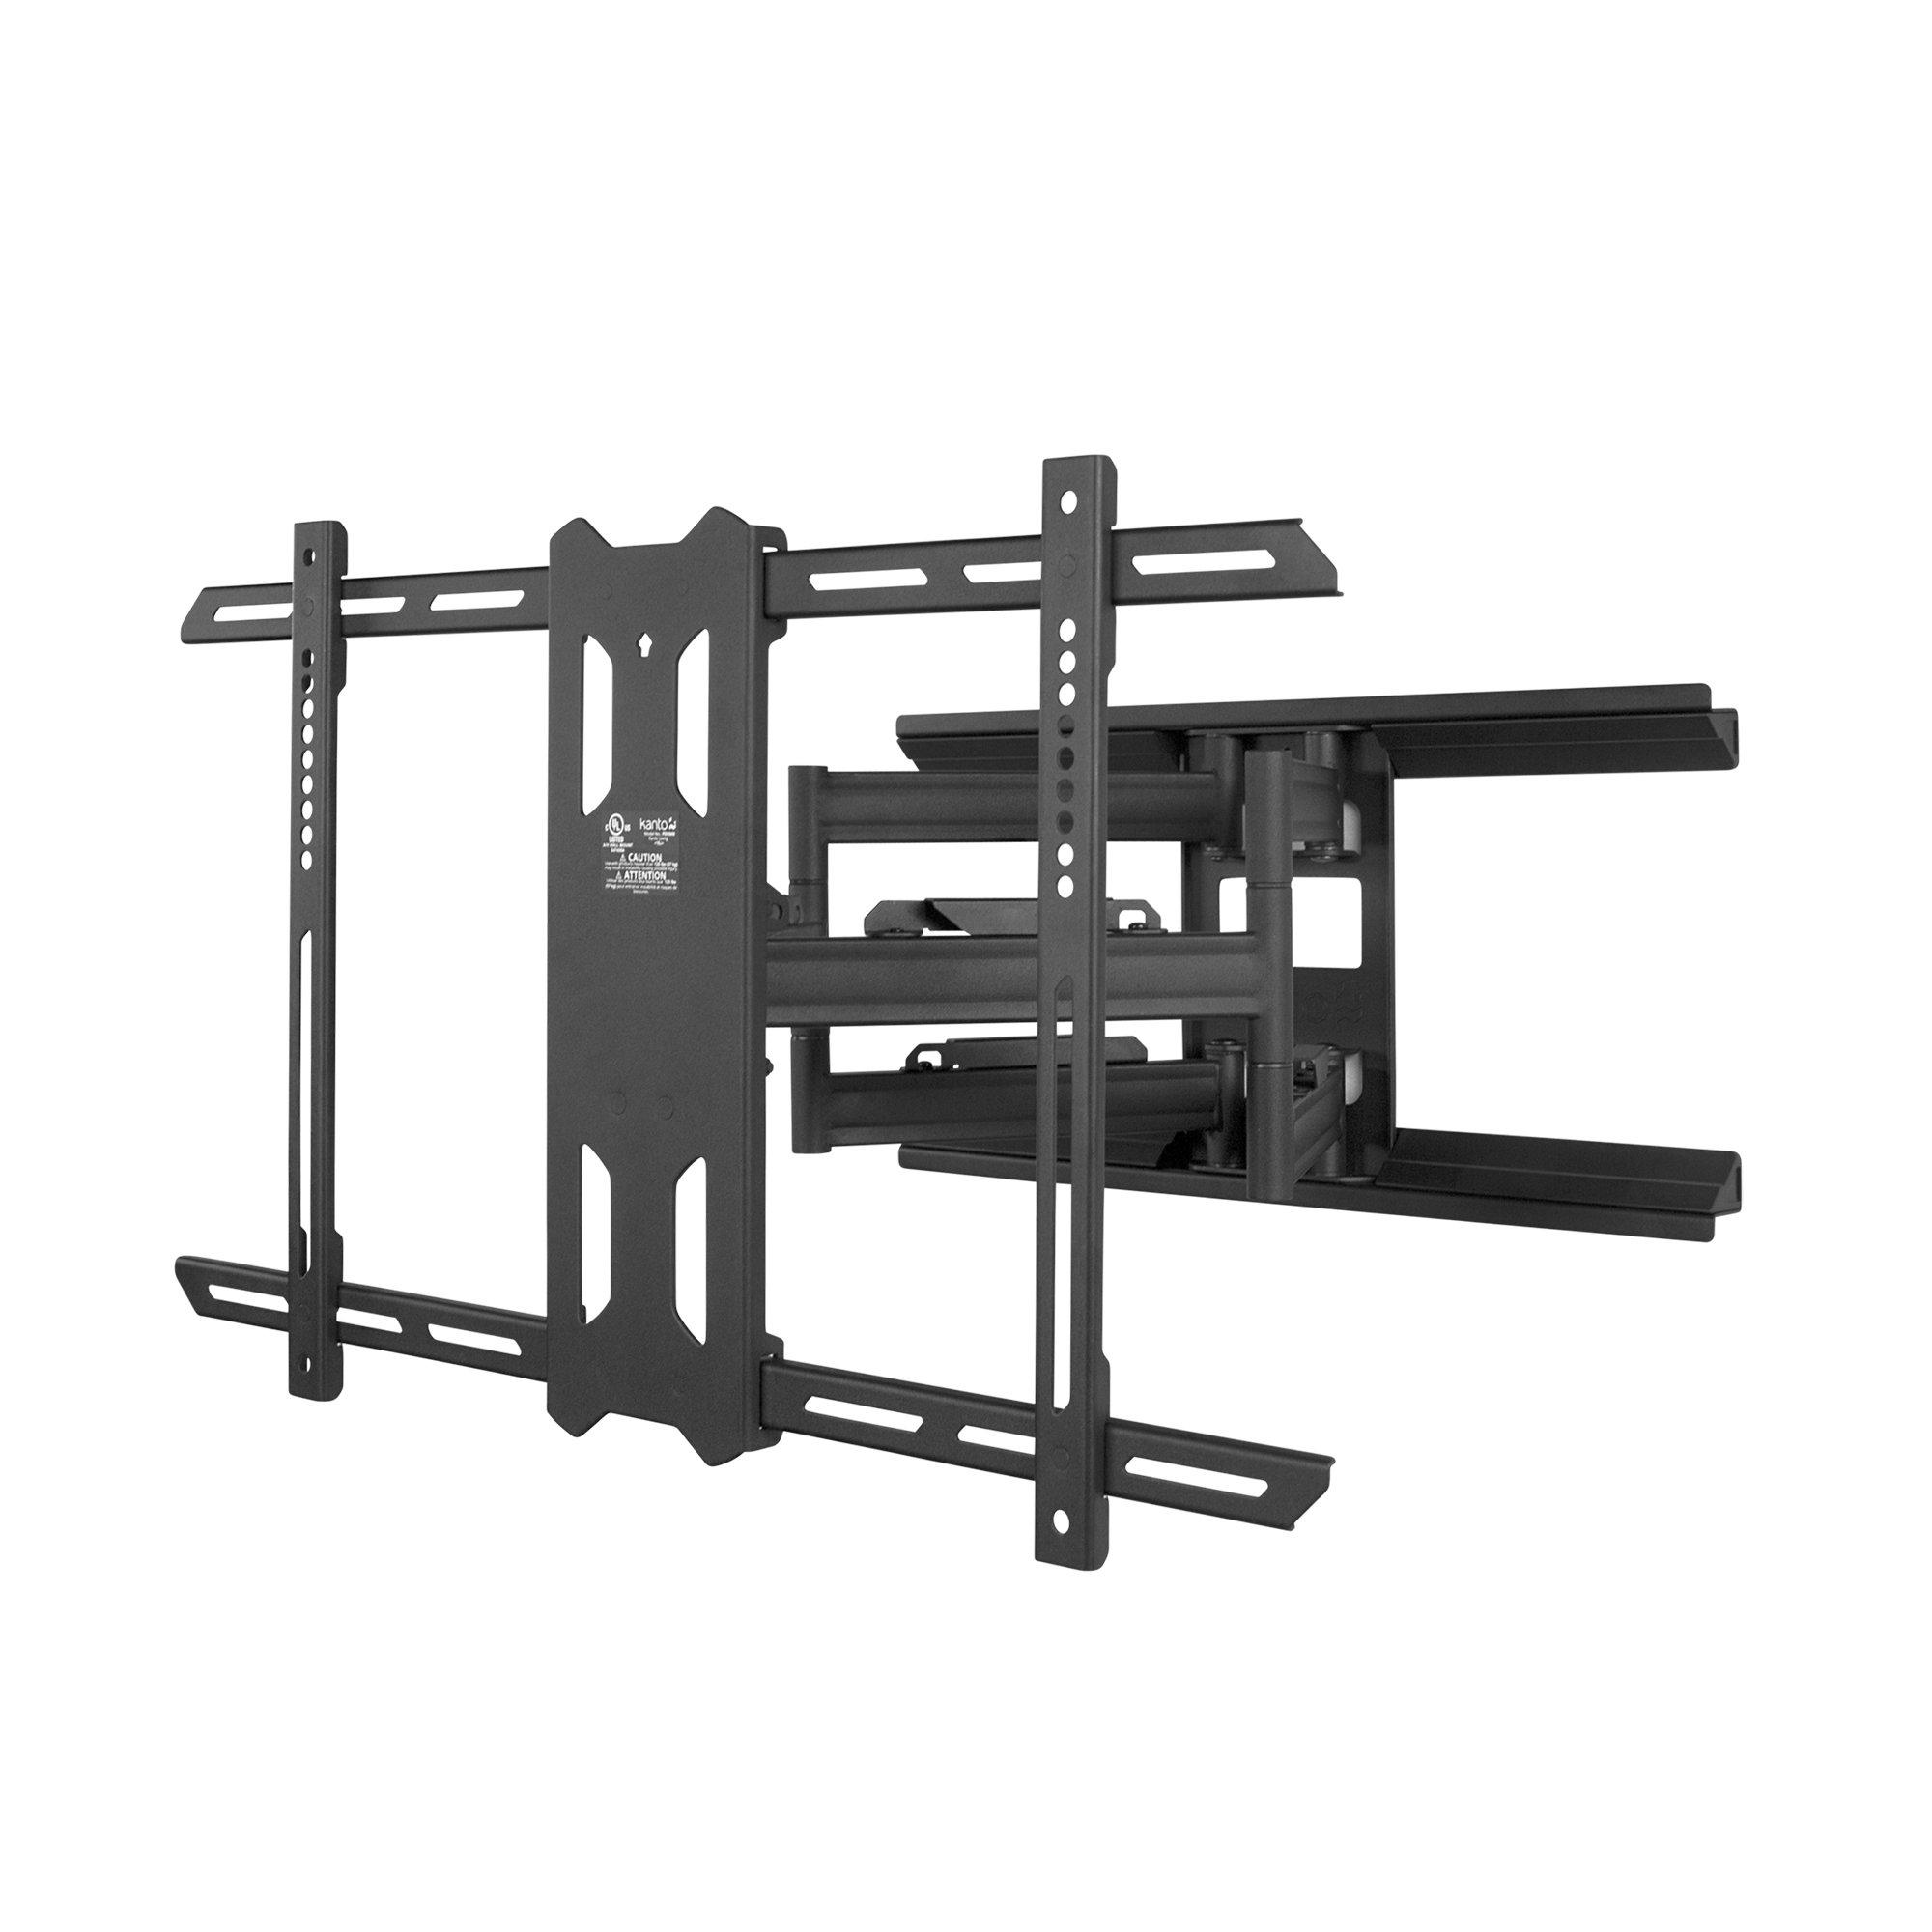 Kanto Full-Motion TV Wall Mount for 37-inch to 75-inch Flat-Screen Monitor – Easy Install – Black by Kanto